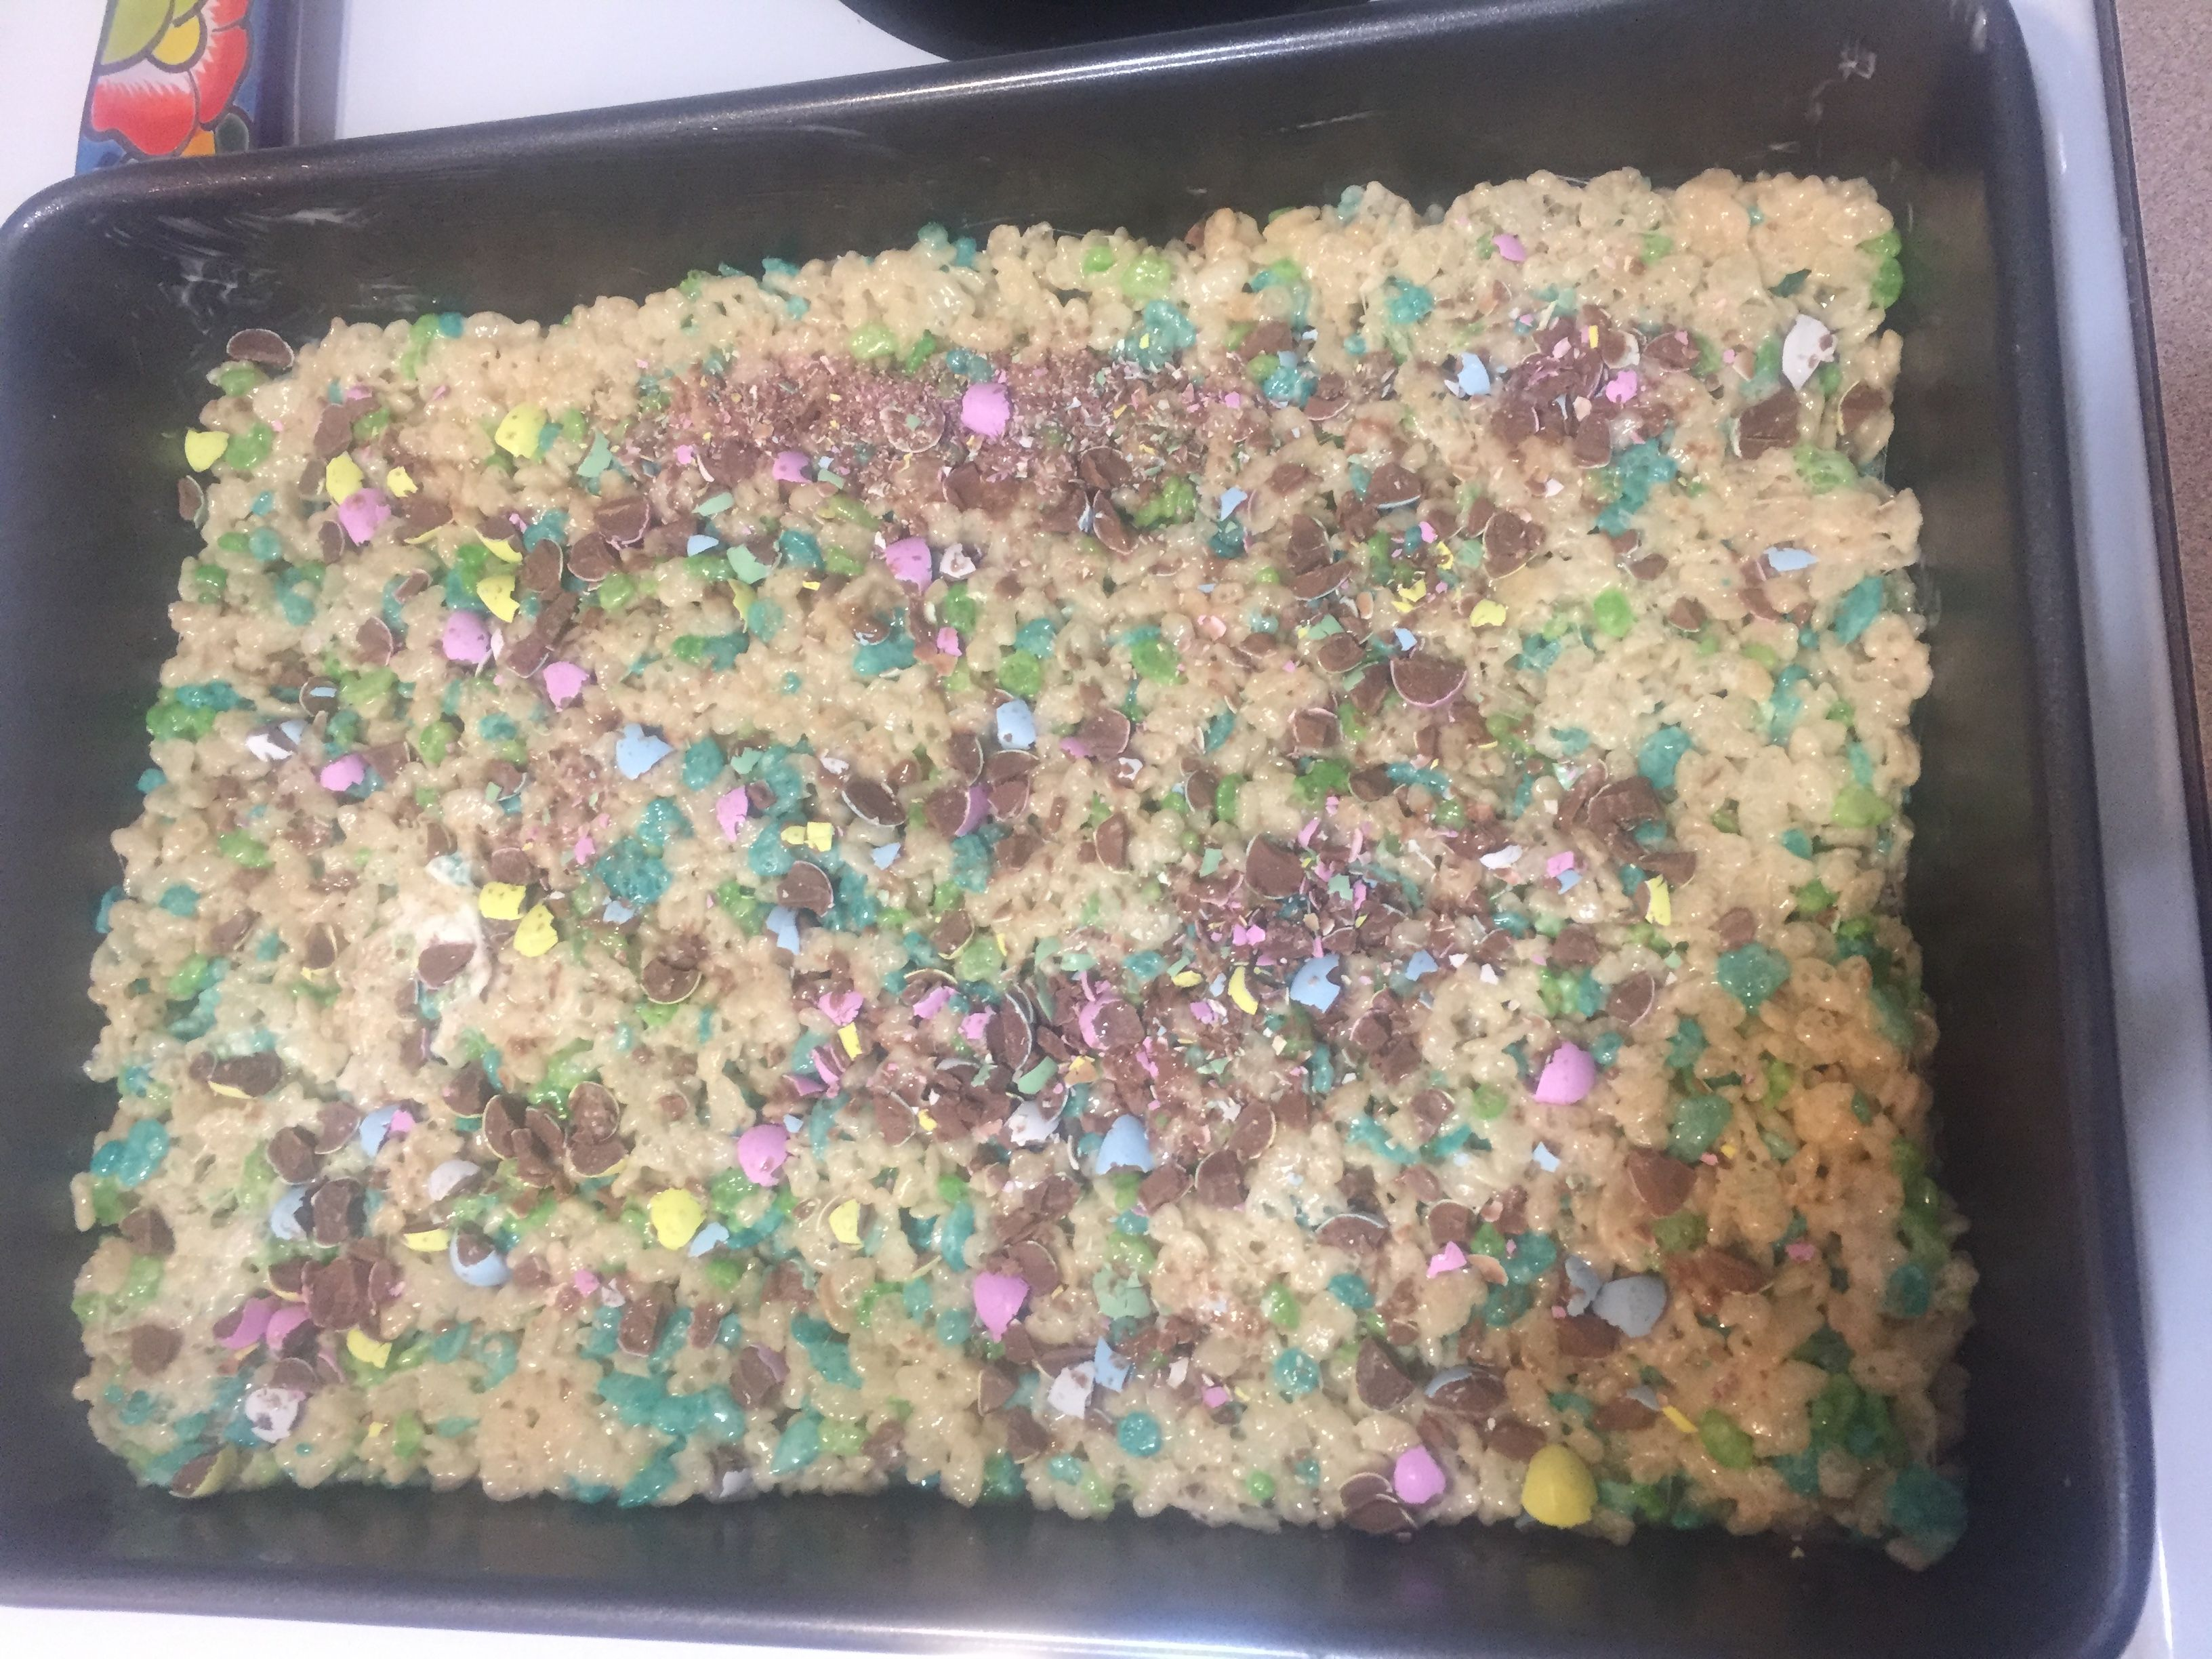 Easter Rice Krispies With Crumbled Mini Eggs On Top 1 4